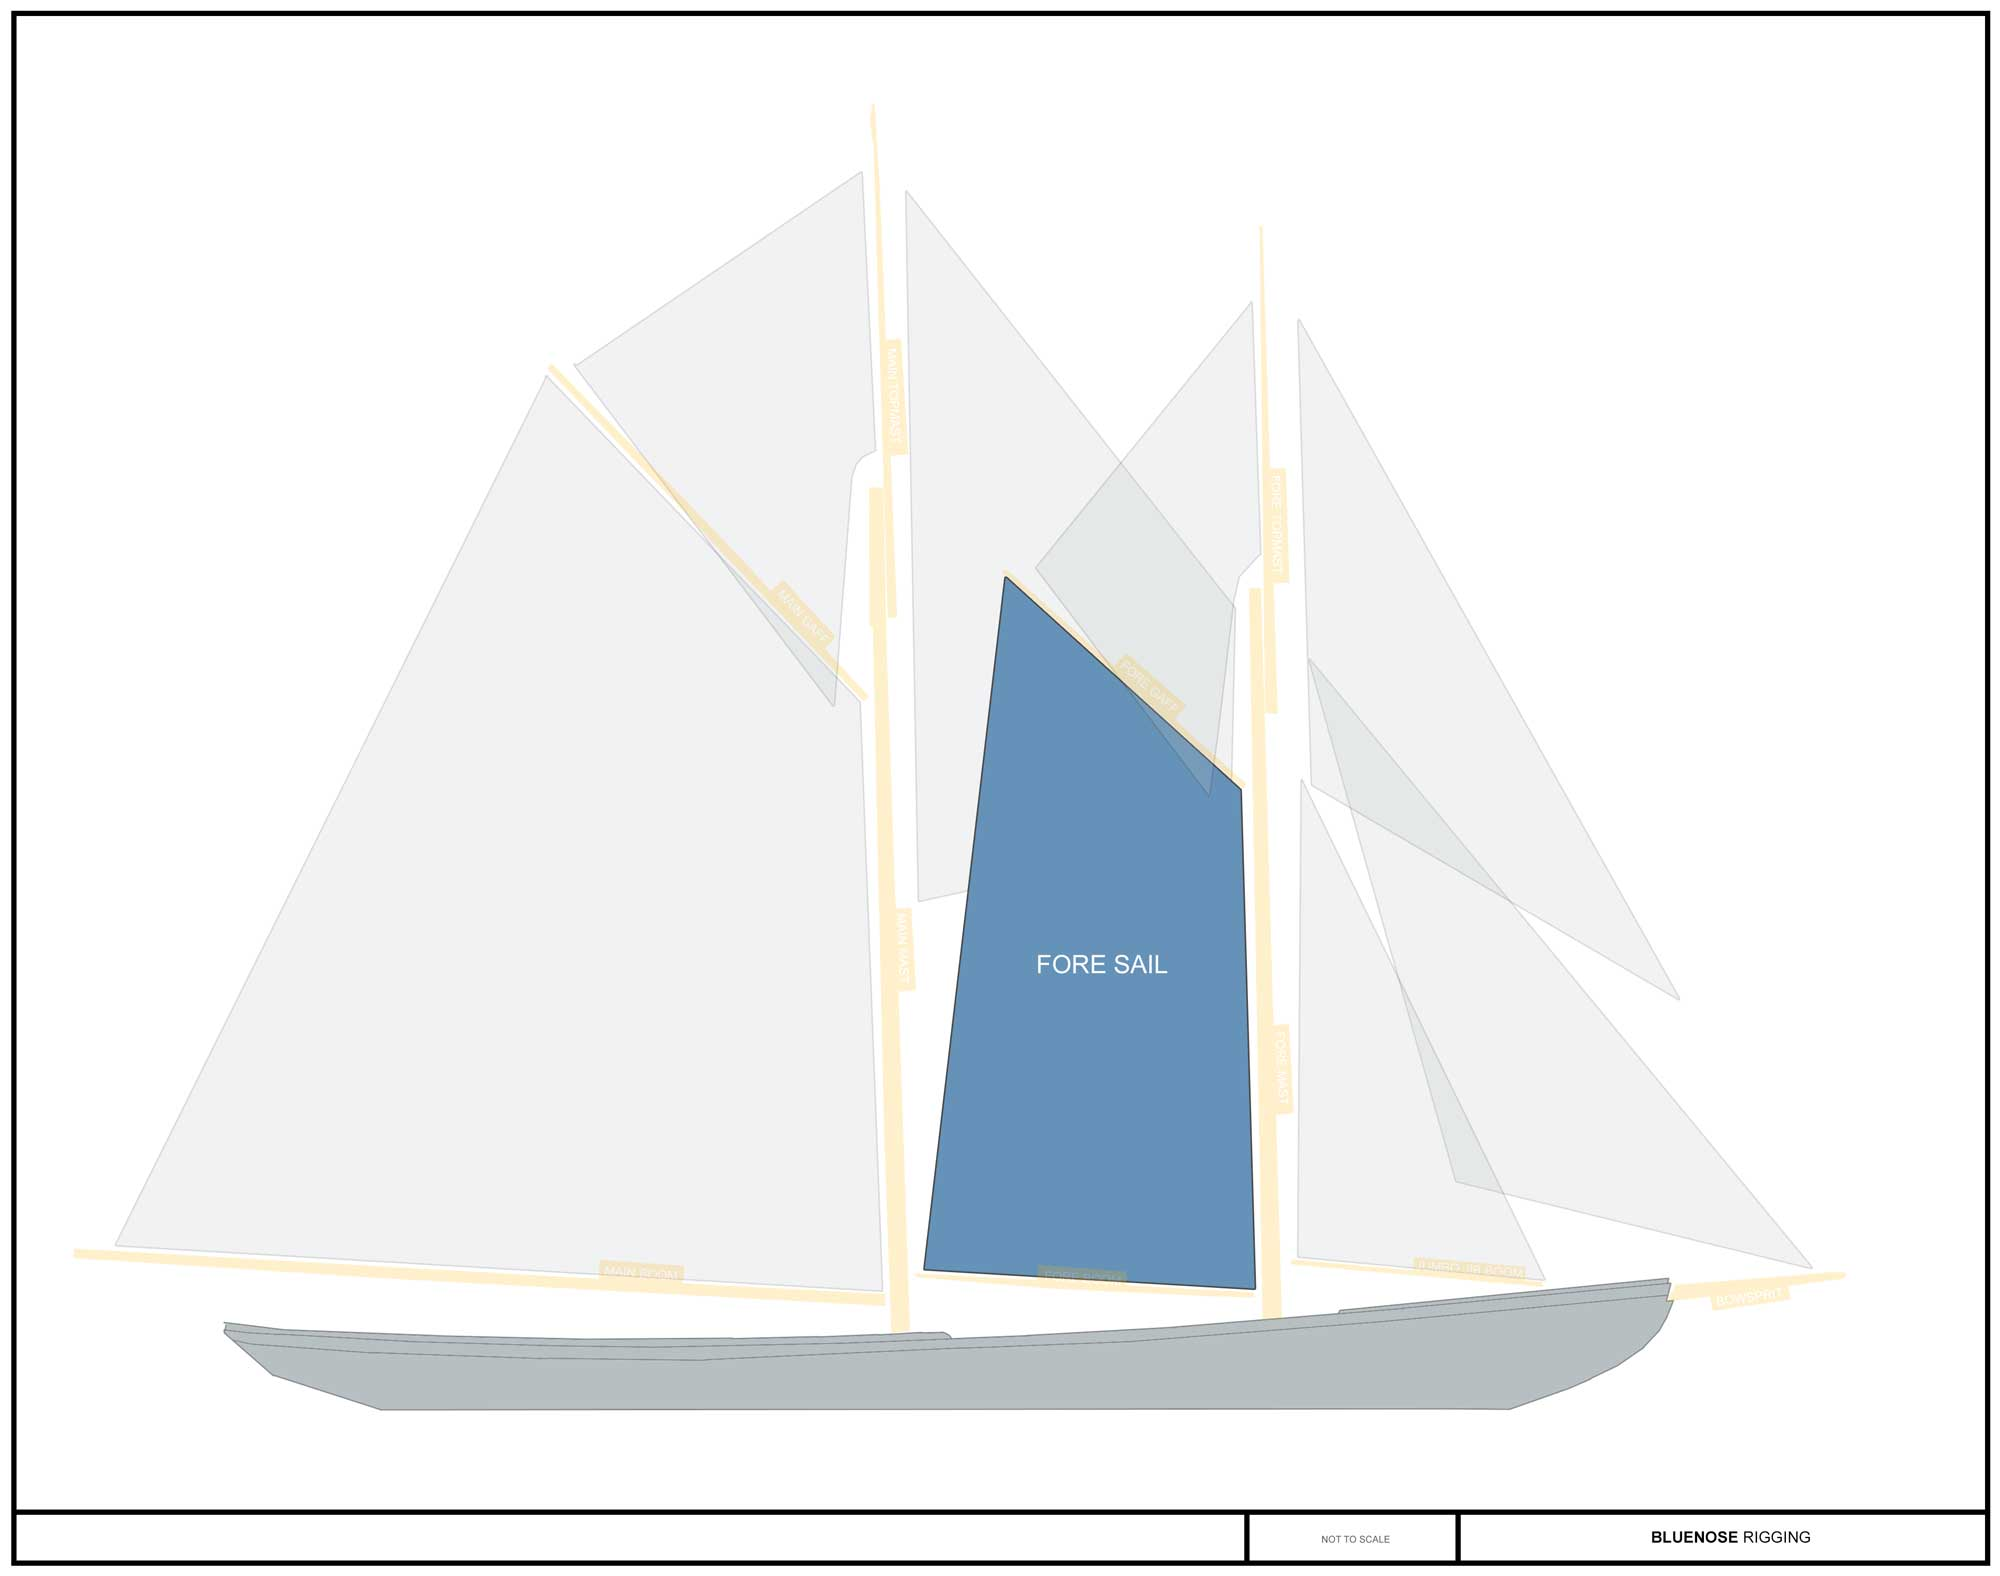 foresail